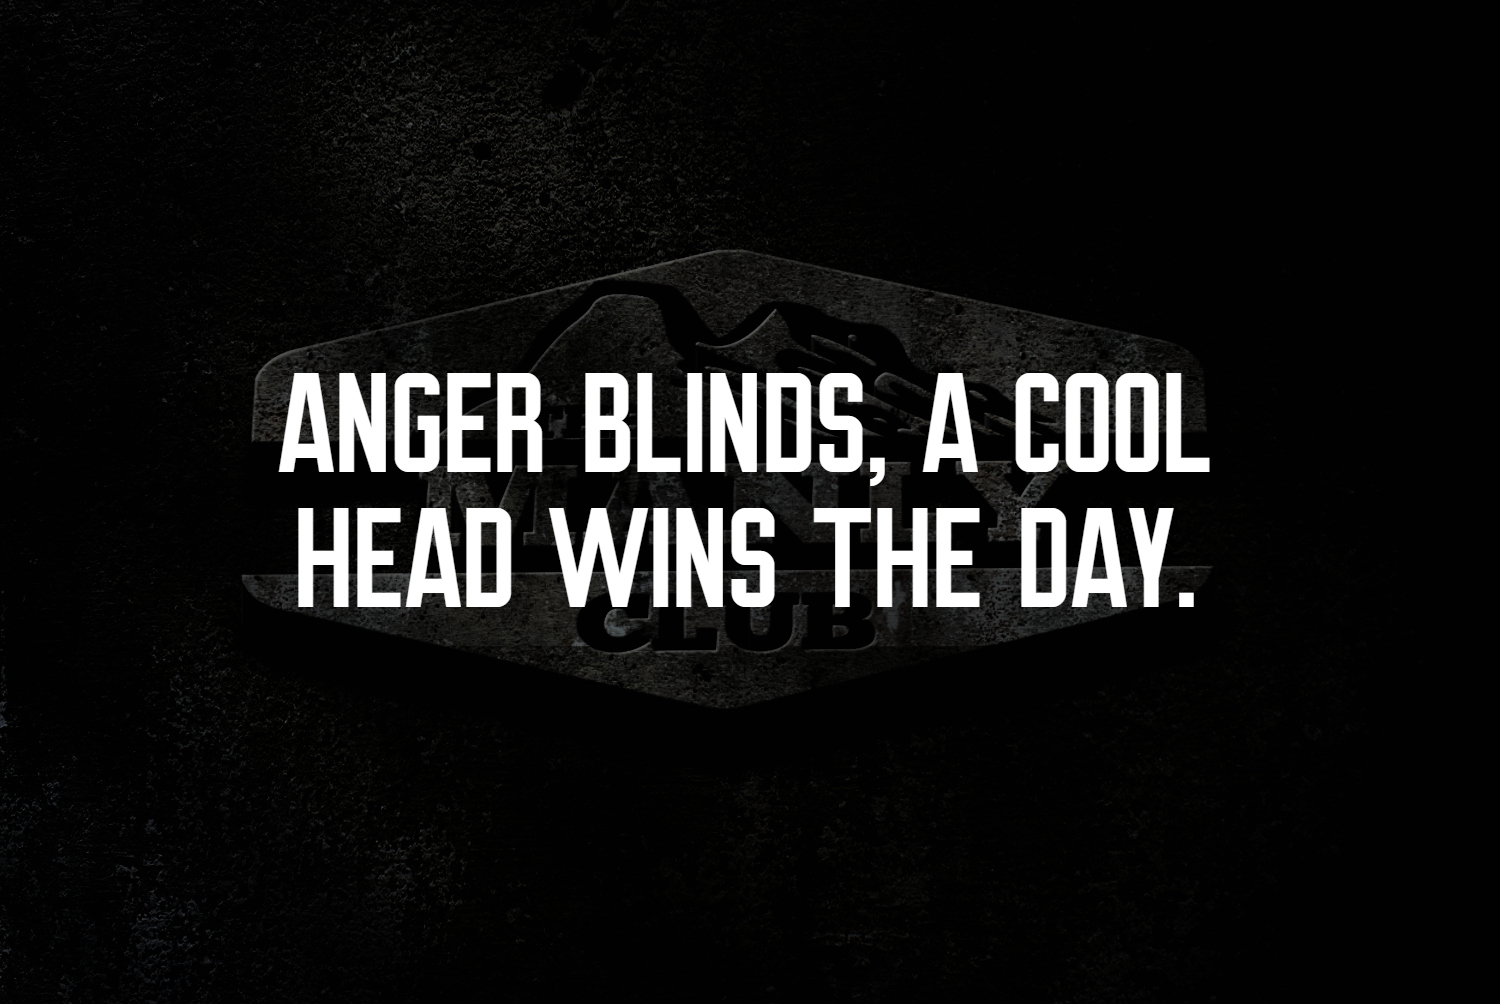 anger blinds a cool head wins the day